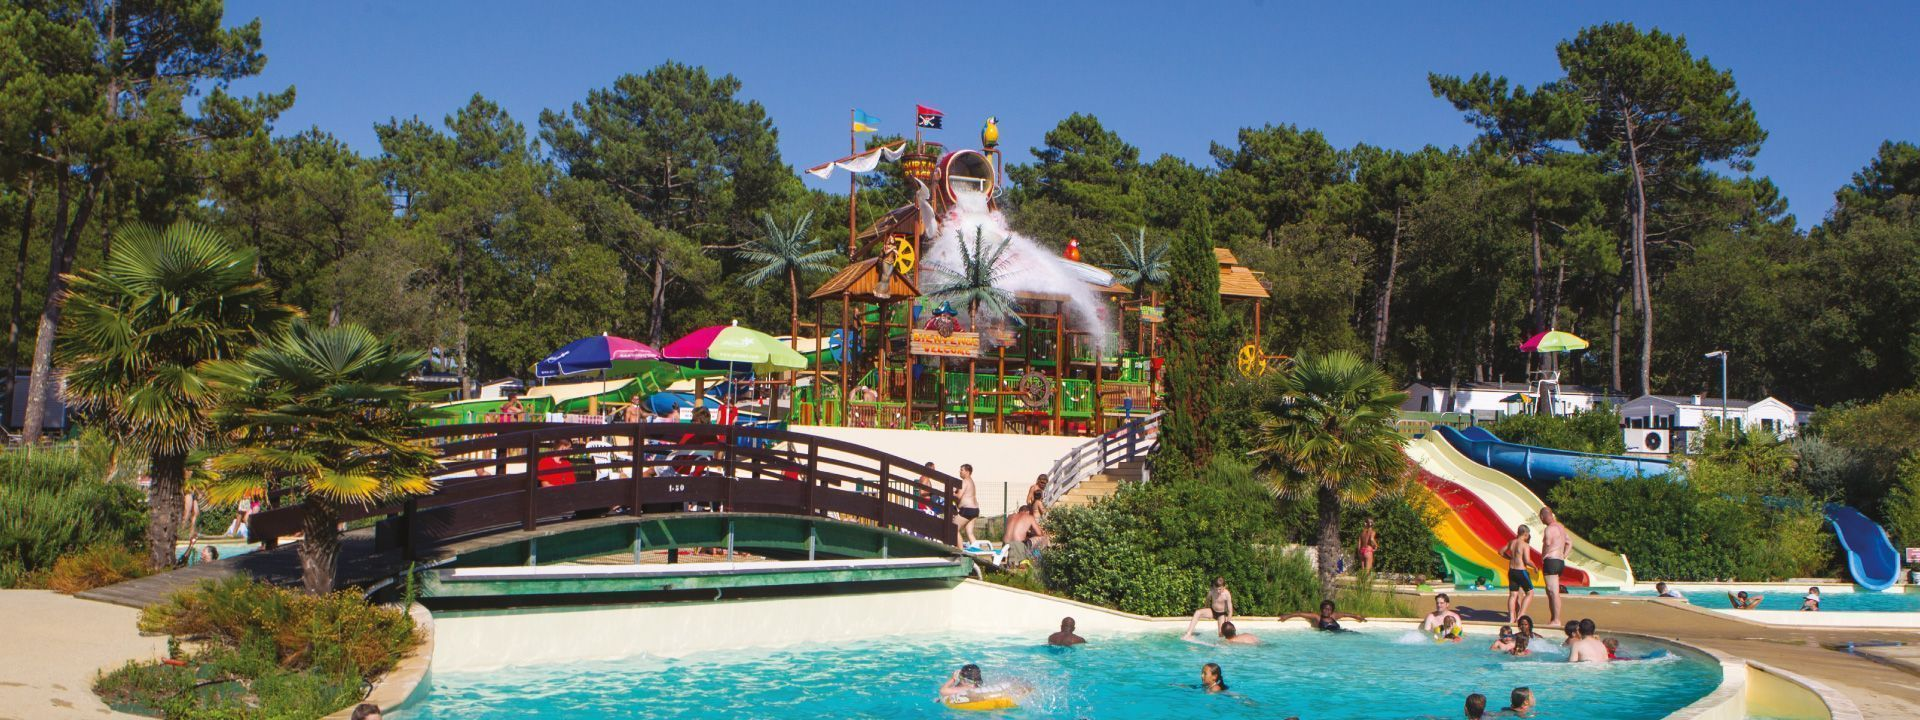 Camping Côte d'Argent (Gironde)